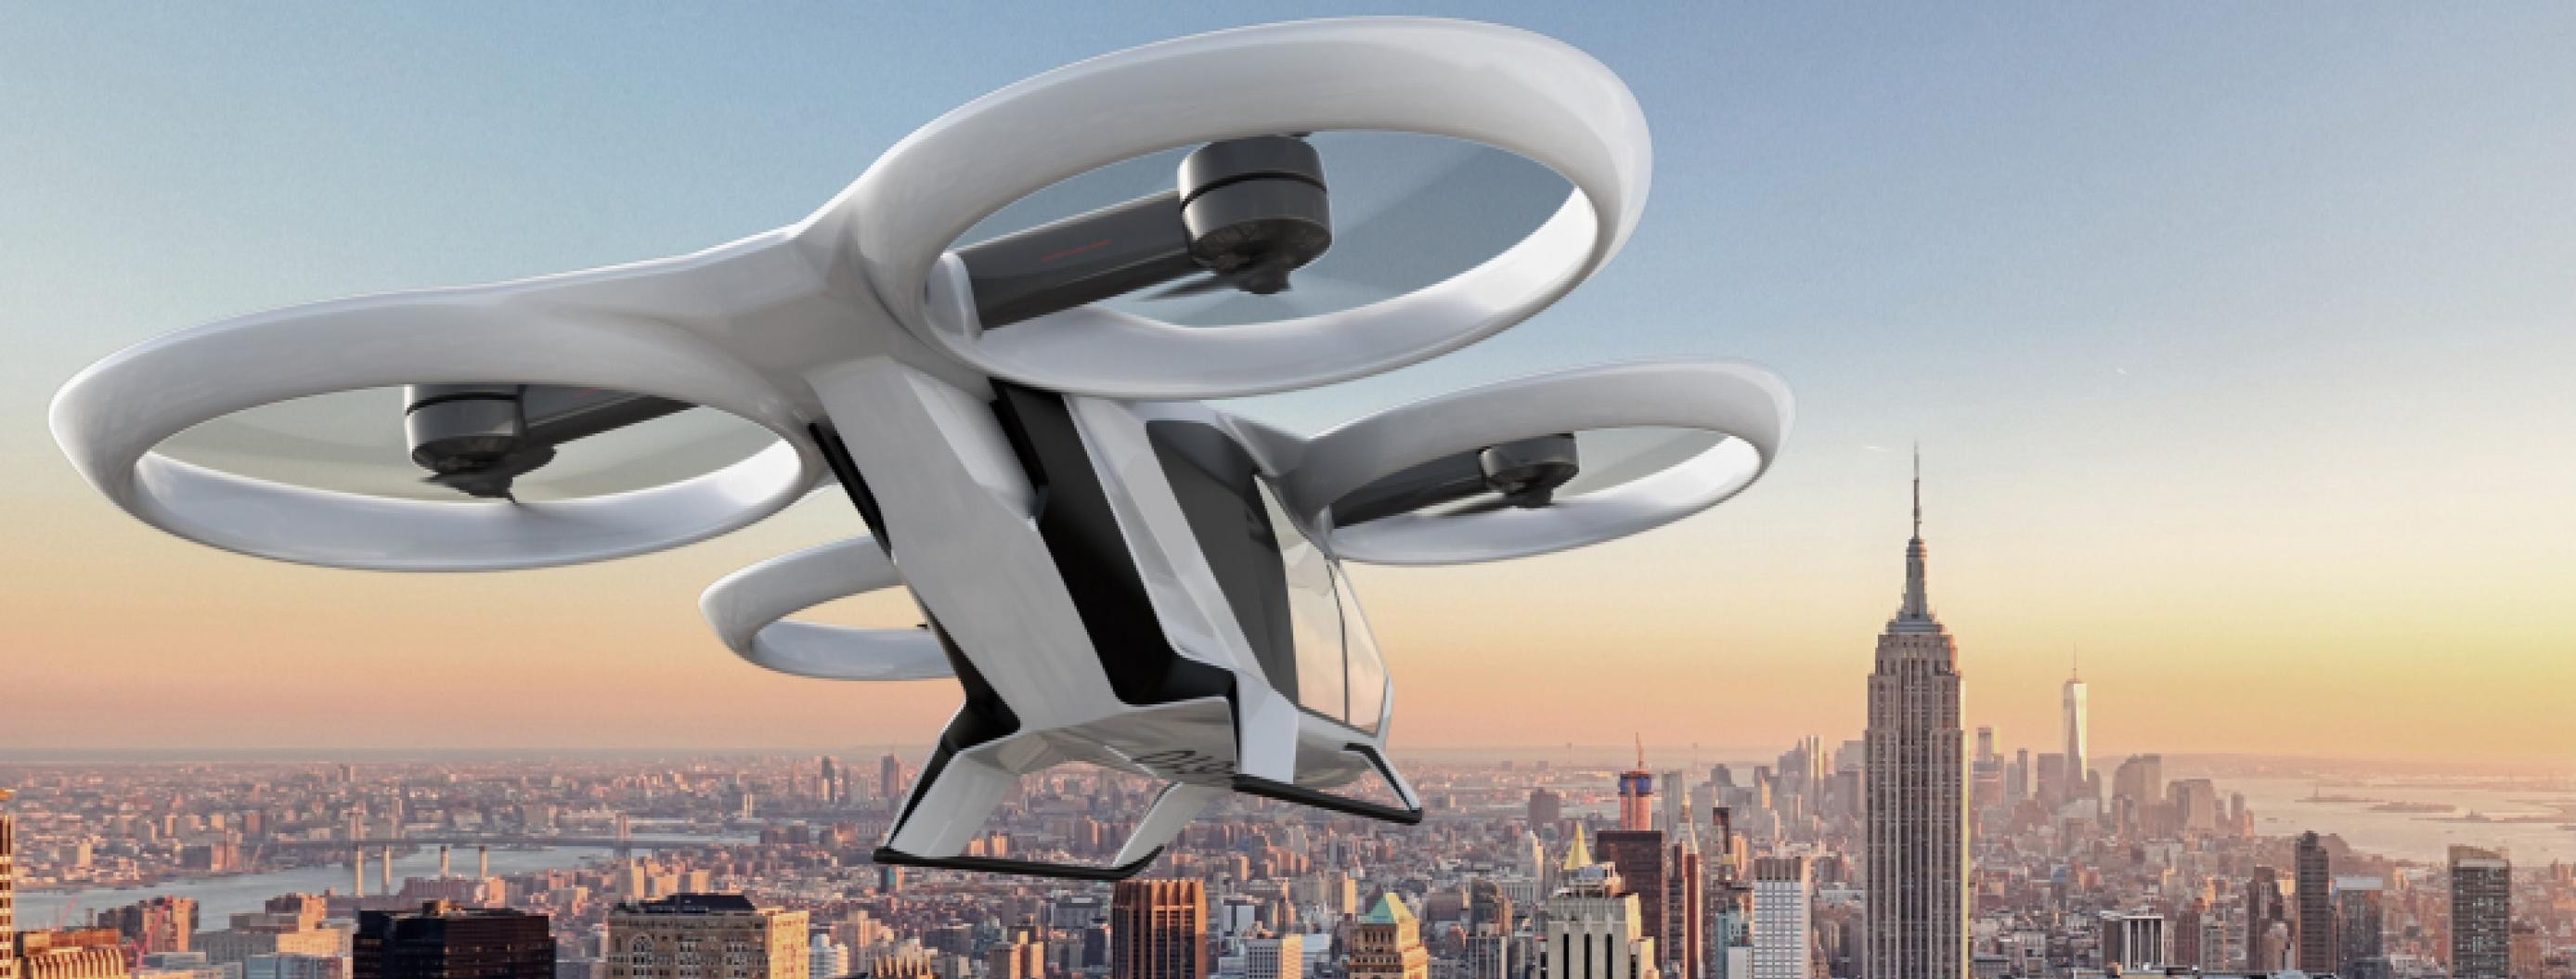 7 Electric Aircrafts You Could Be Flying In Soon